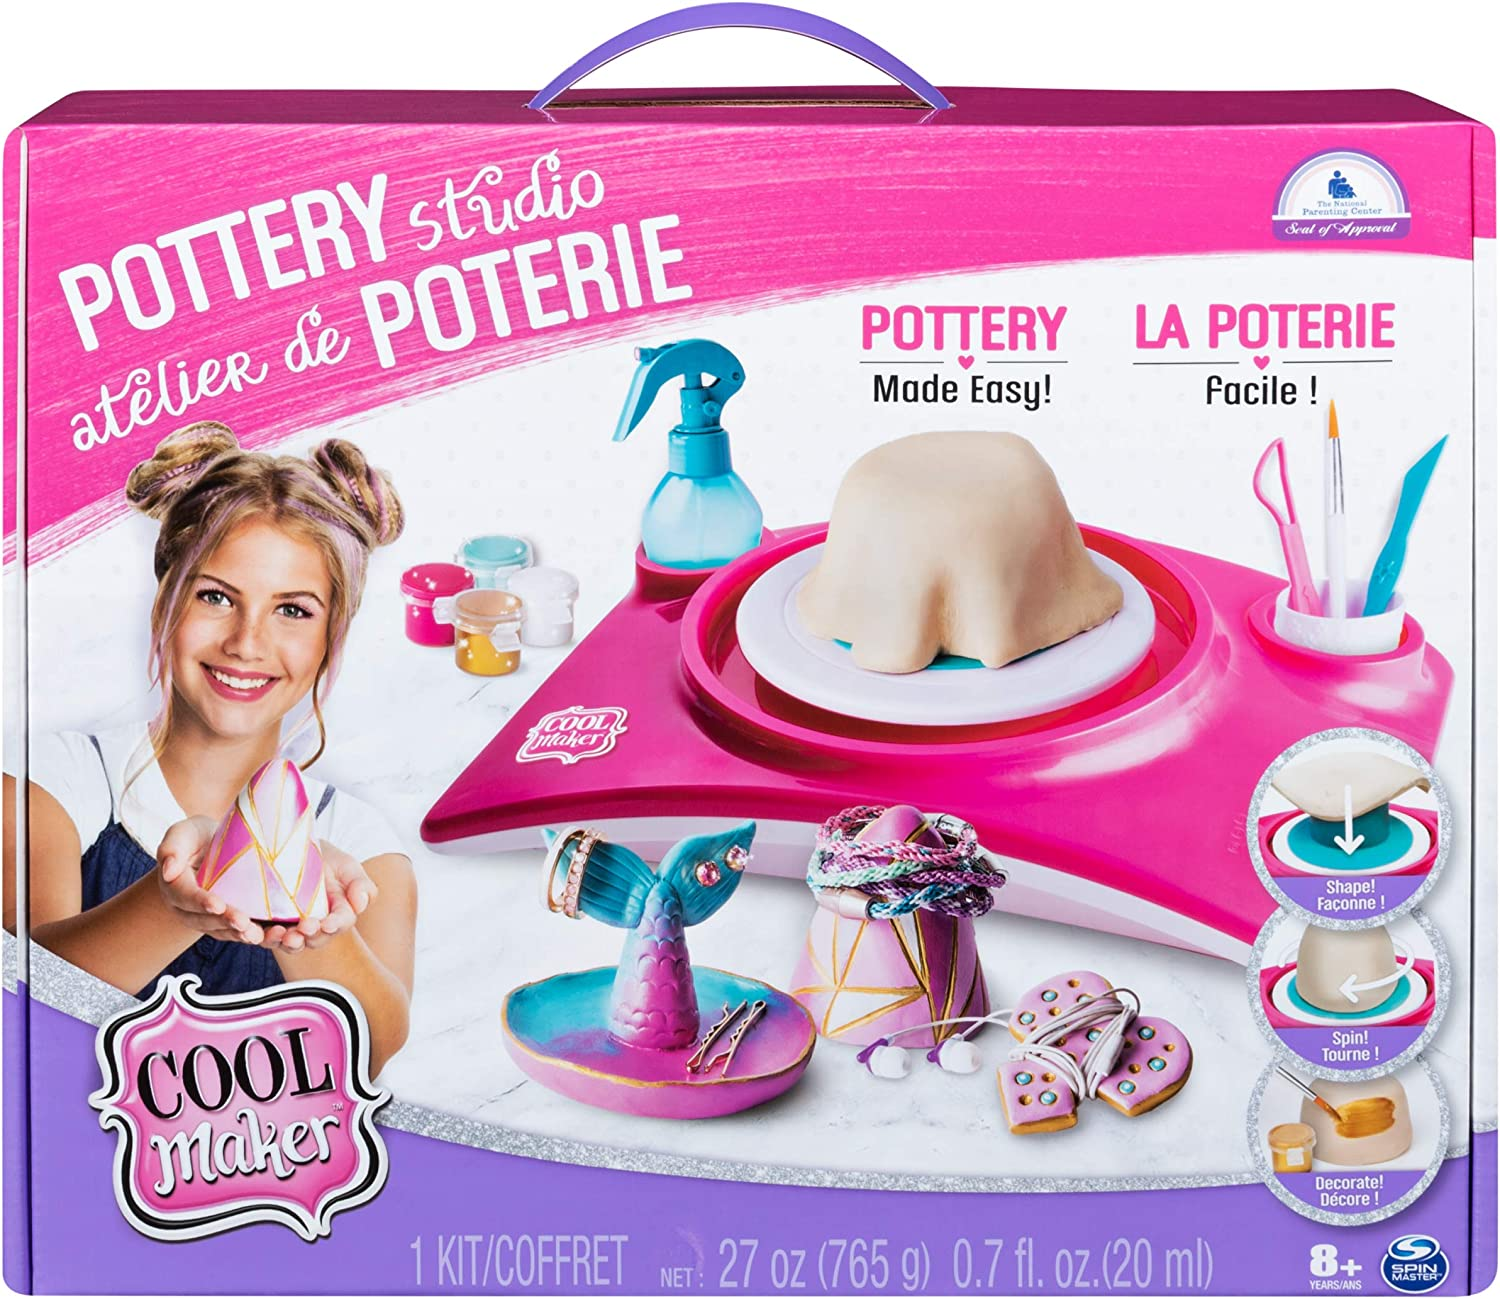 Pottery Cool Pottery Cool Studio Styles Vary Amazon Co Uk Toys Games